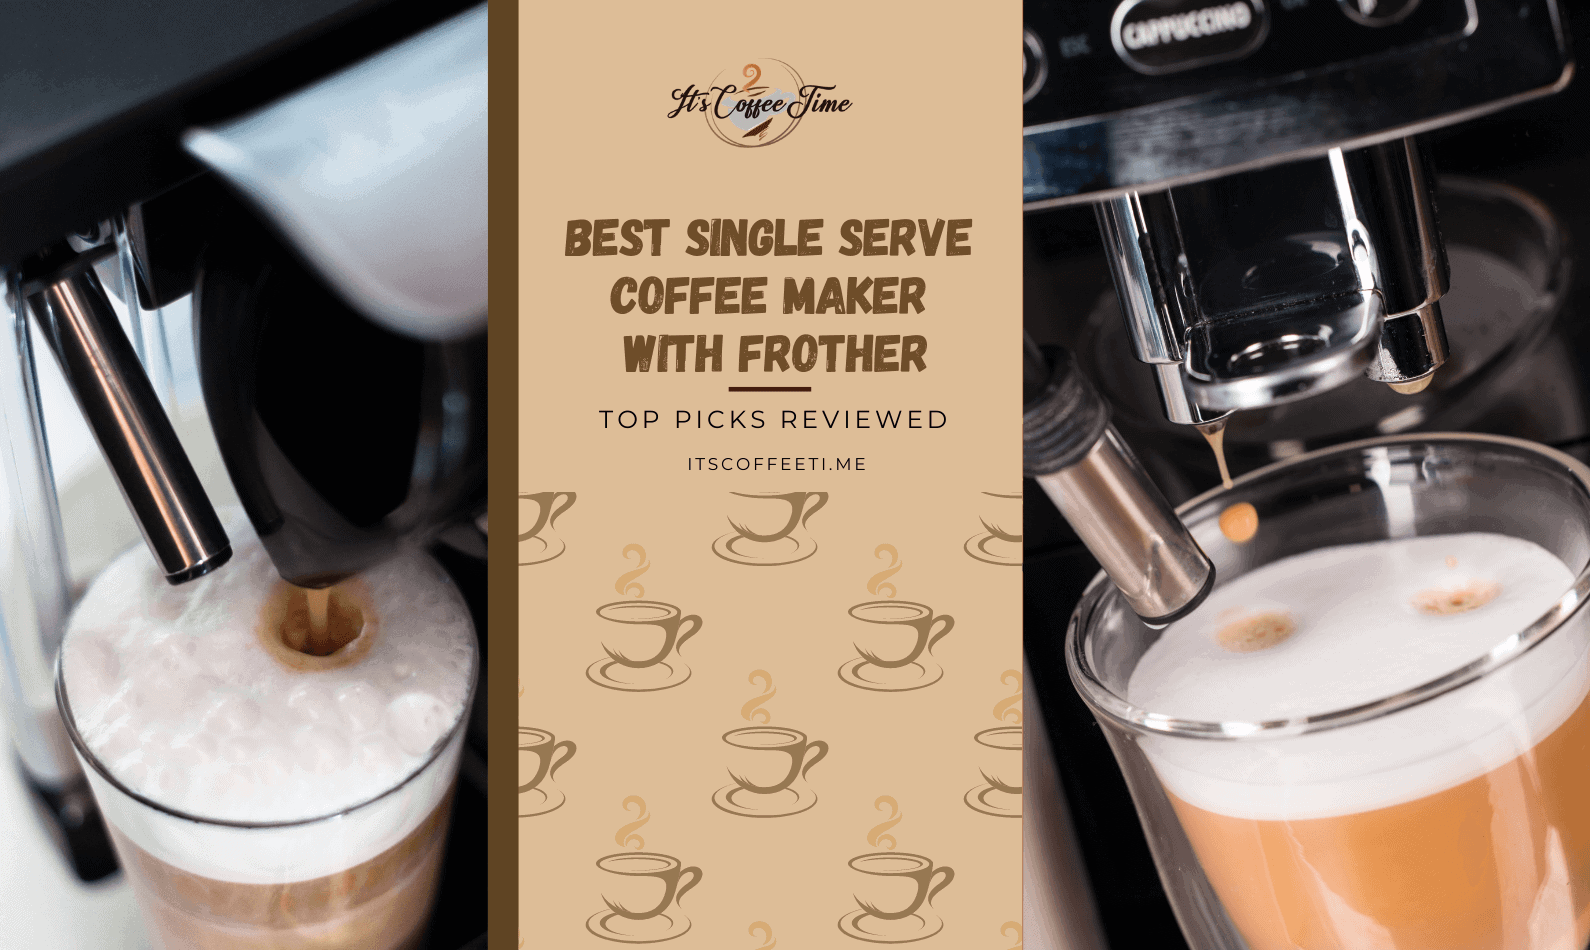 Best Single Serve Coffee Maker with Frother